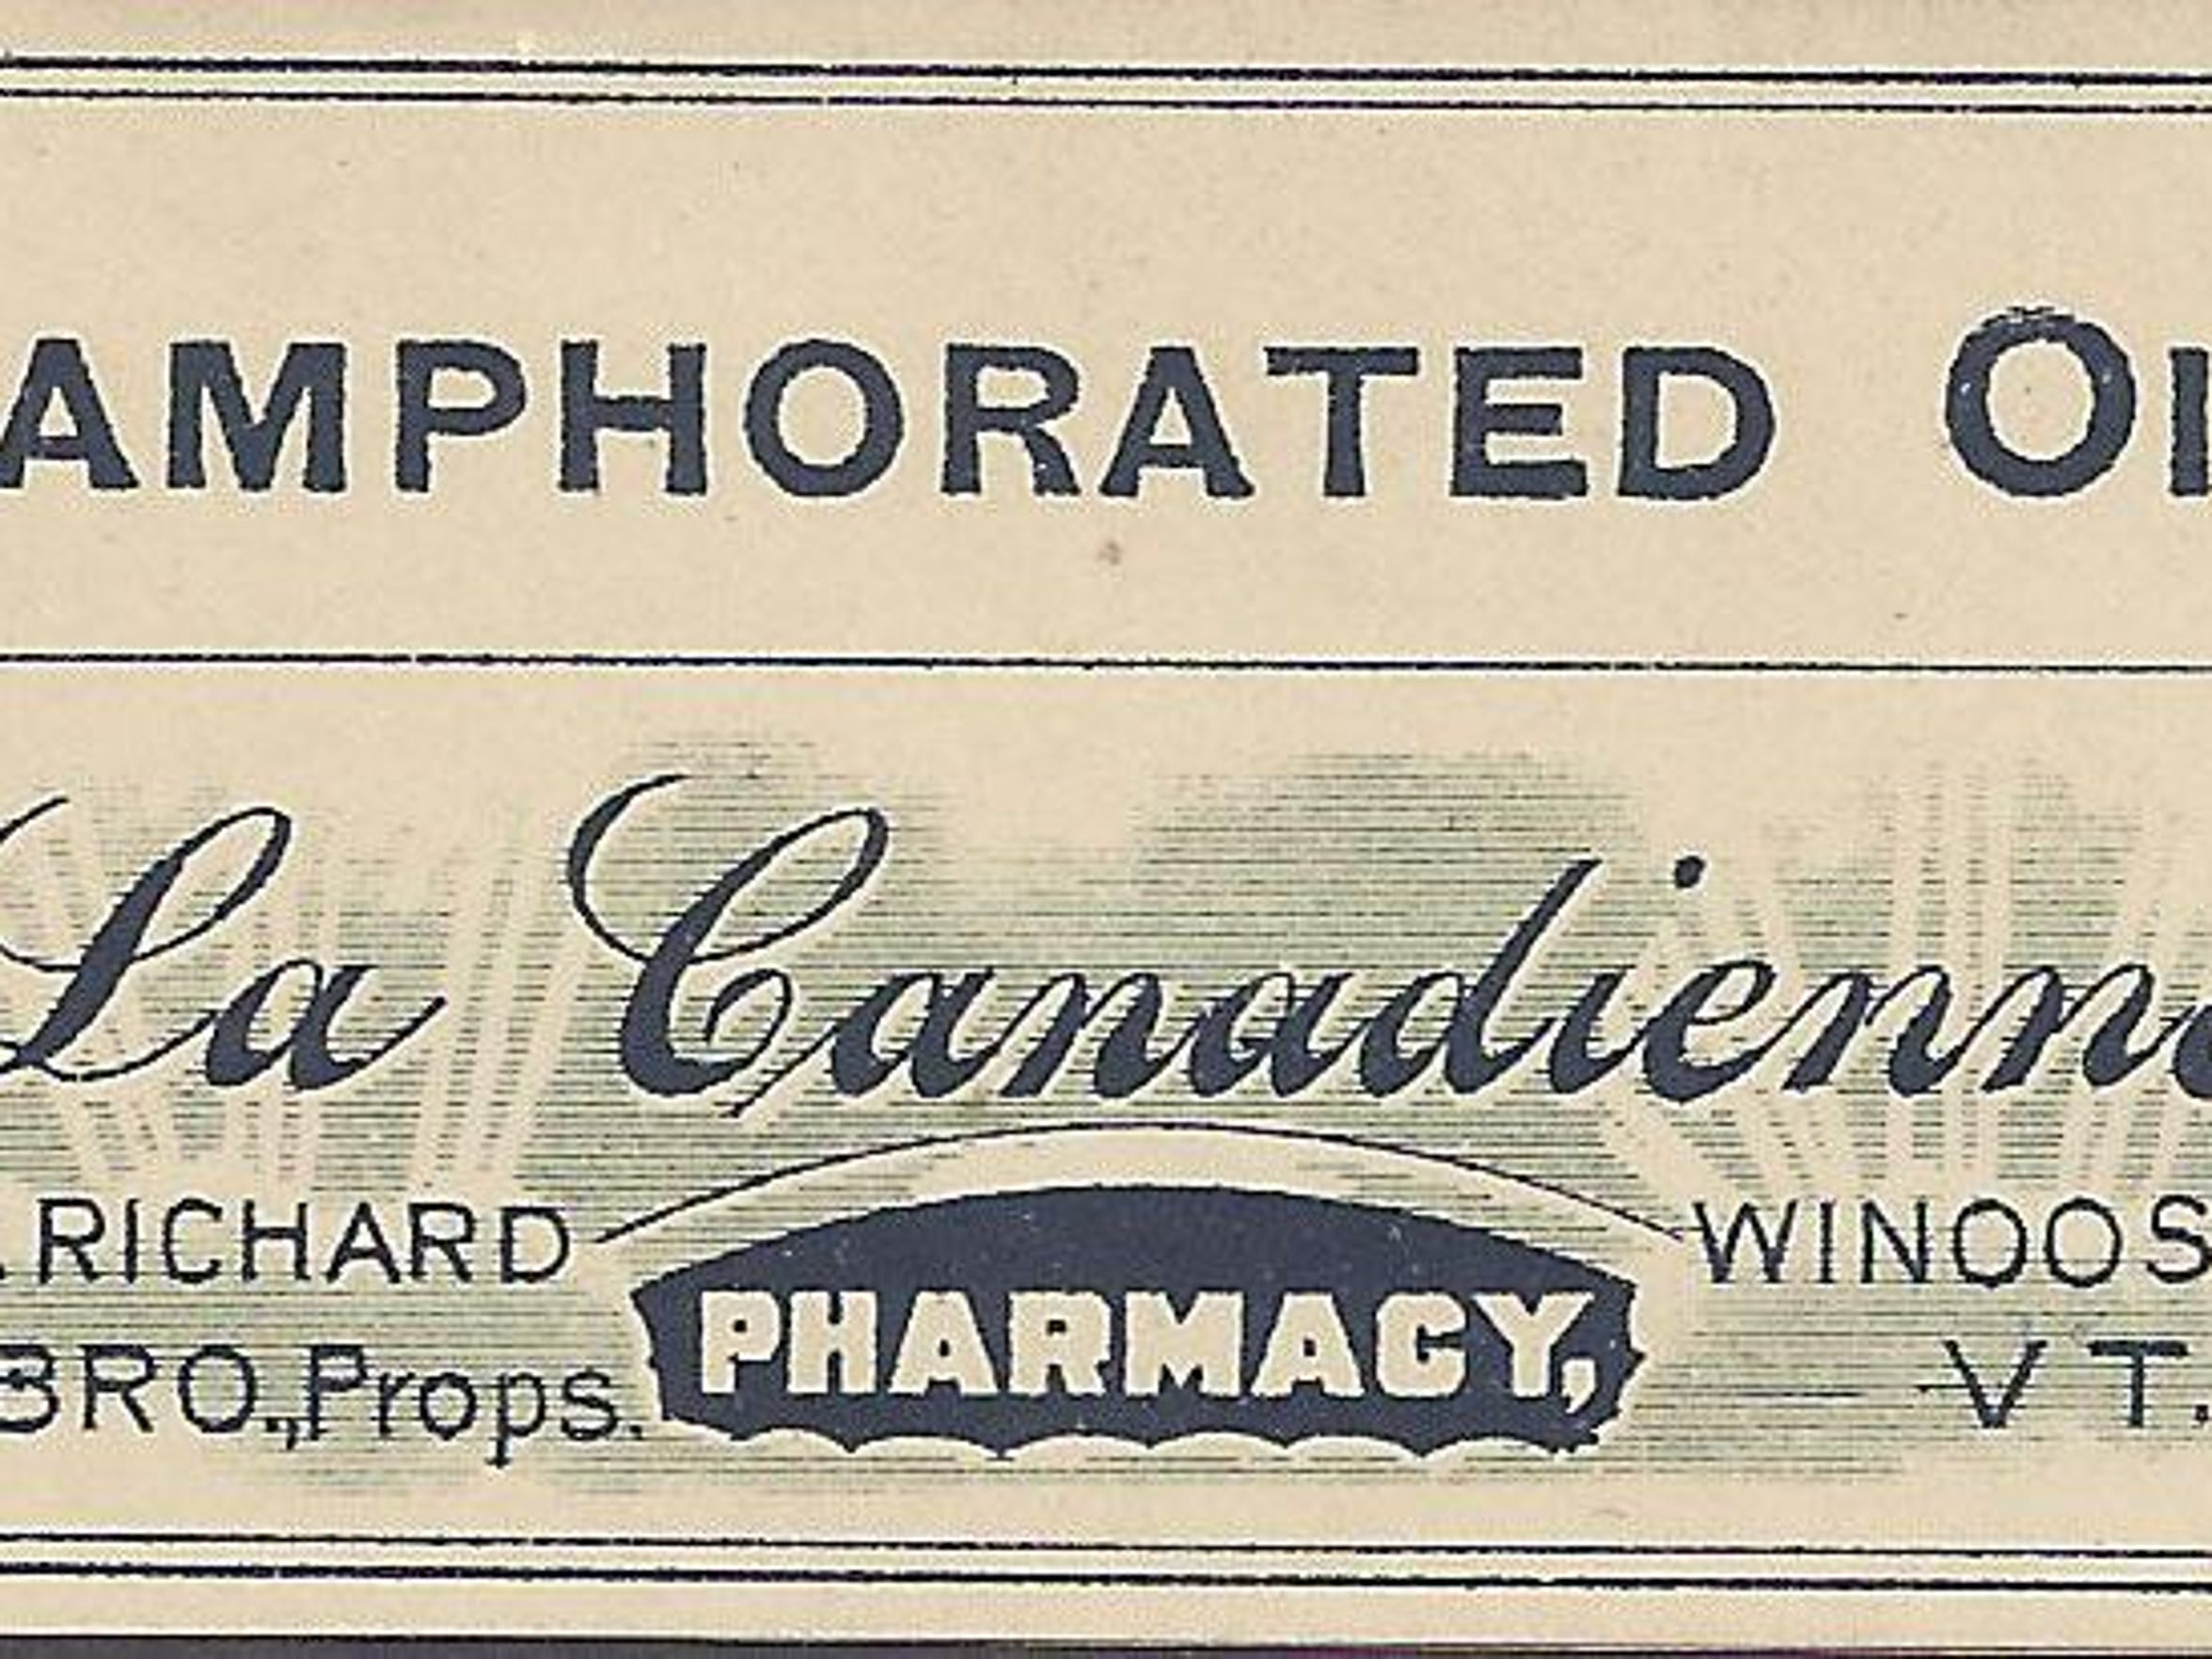 Bottle label from Oliva Richard's Pharmacy in the Winooski